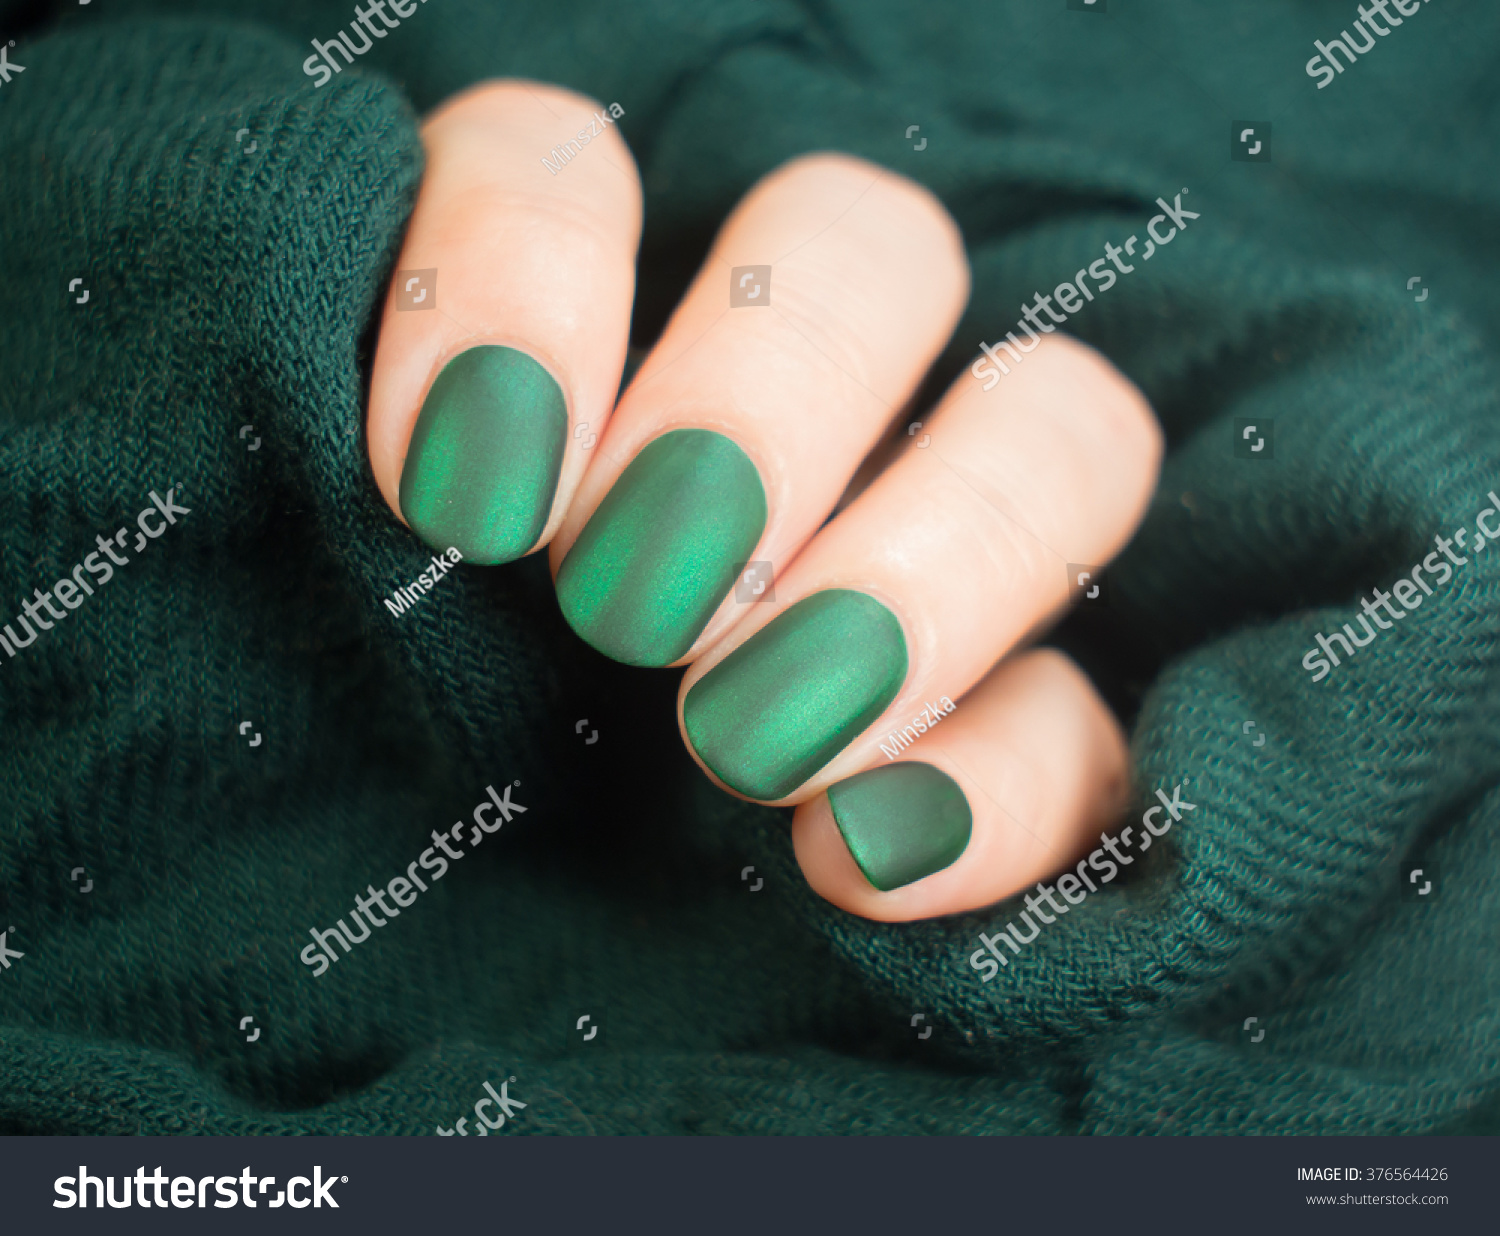 Beautiful Matt Nail Polish Hand Closeup Stock Photo (Safe to Use ...